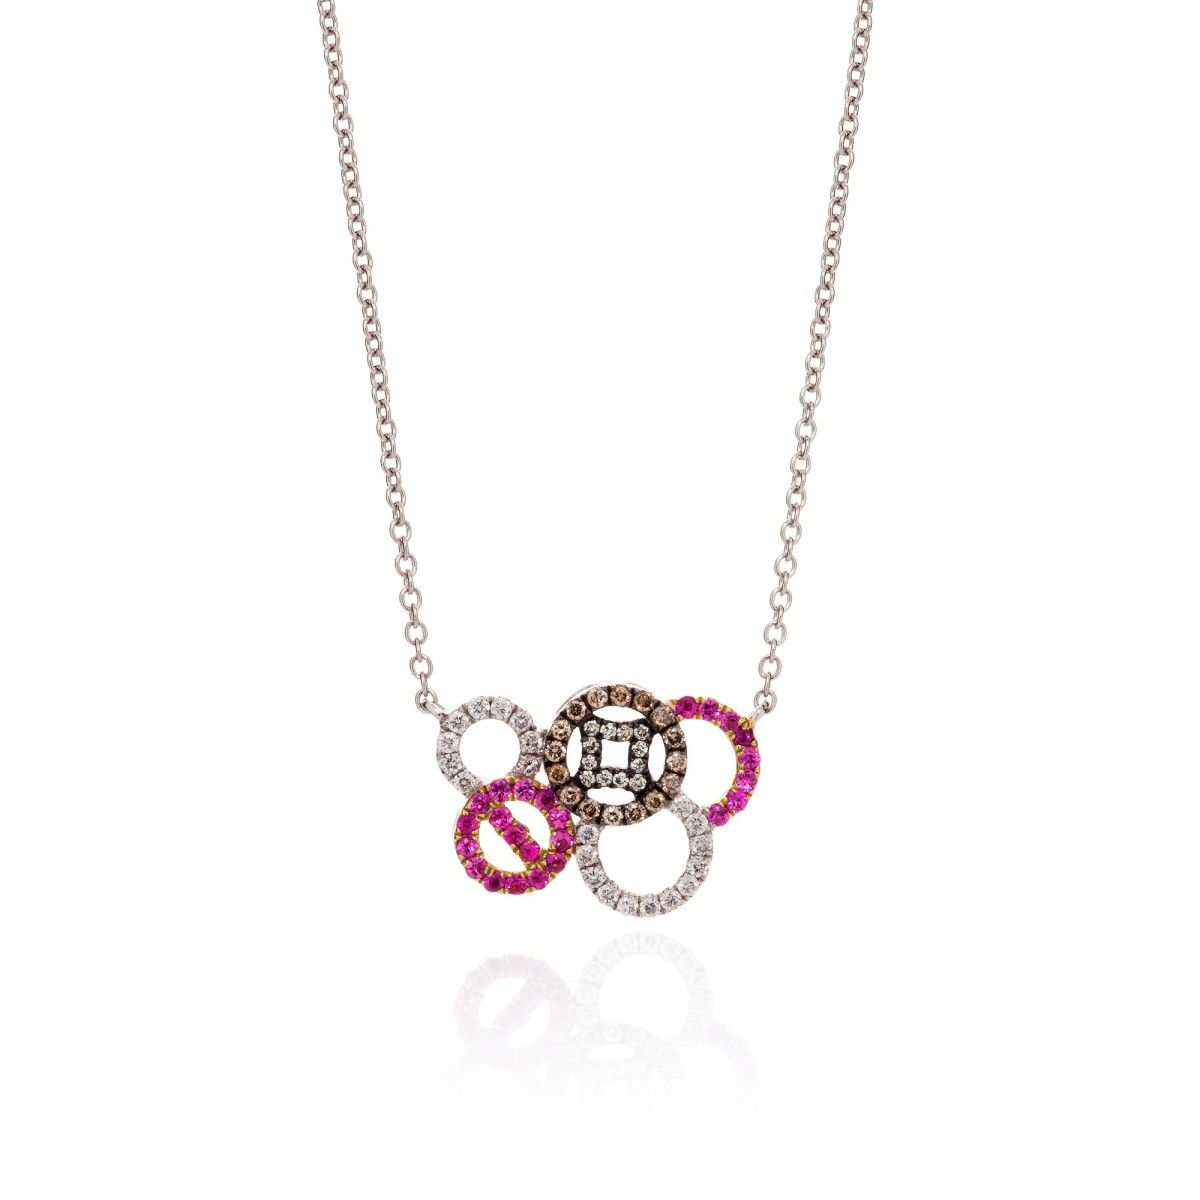 Coin multicircle necklace ct white gold set with white and